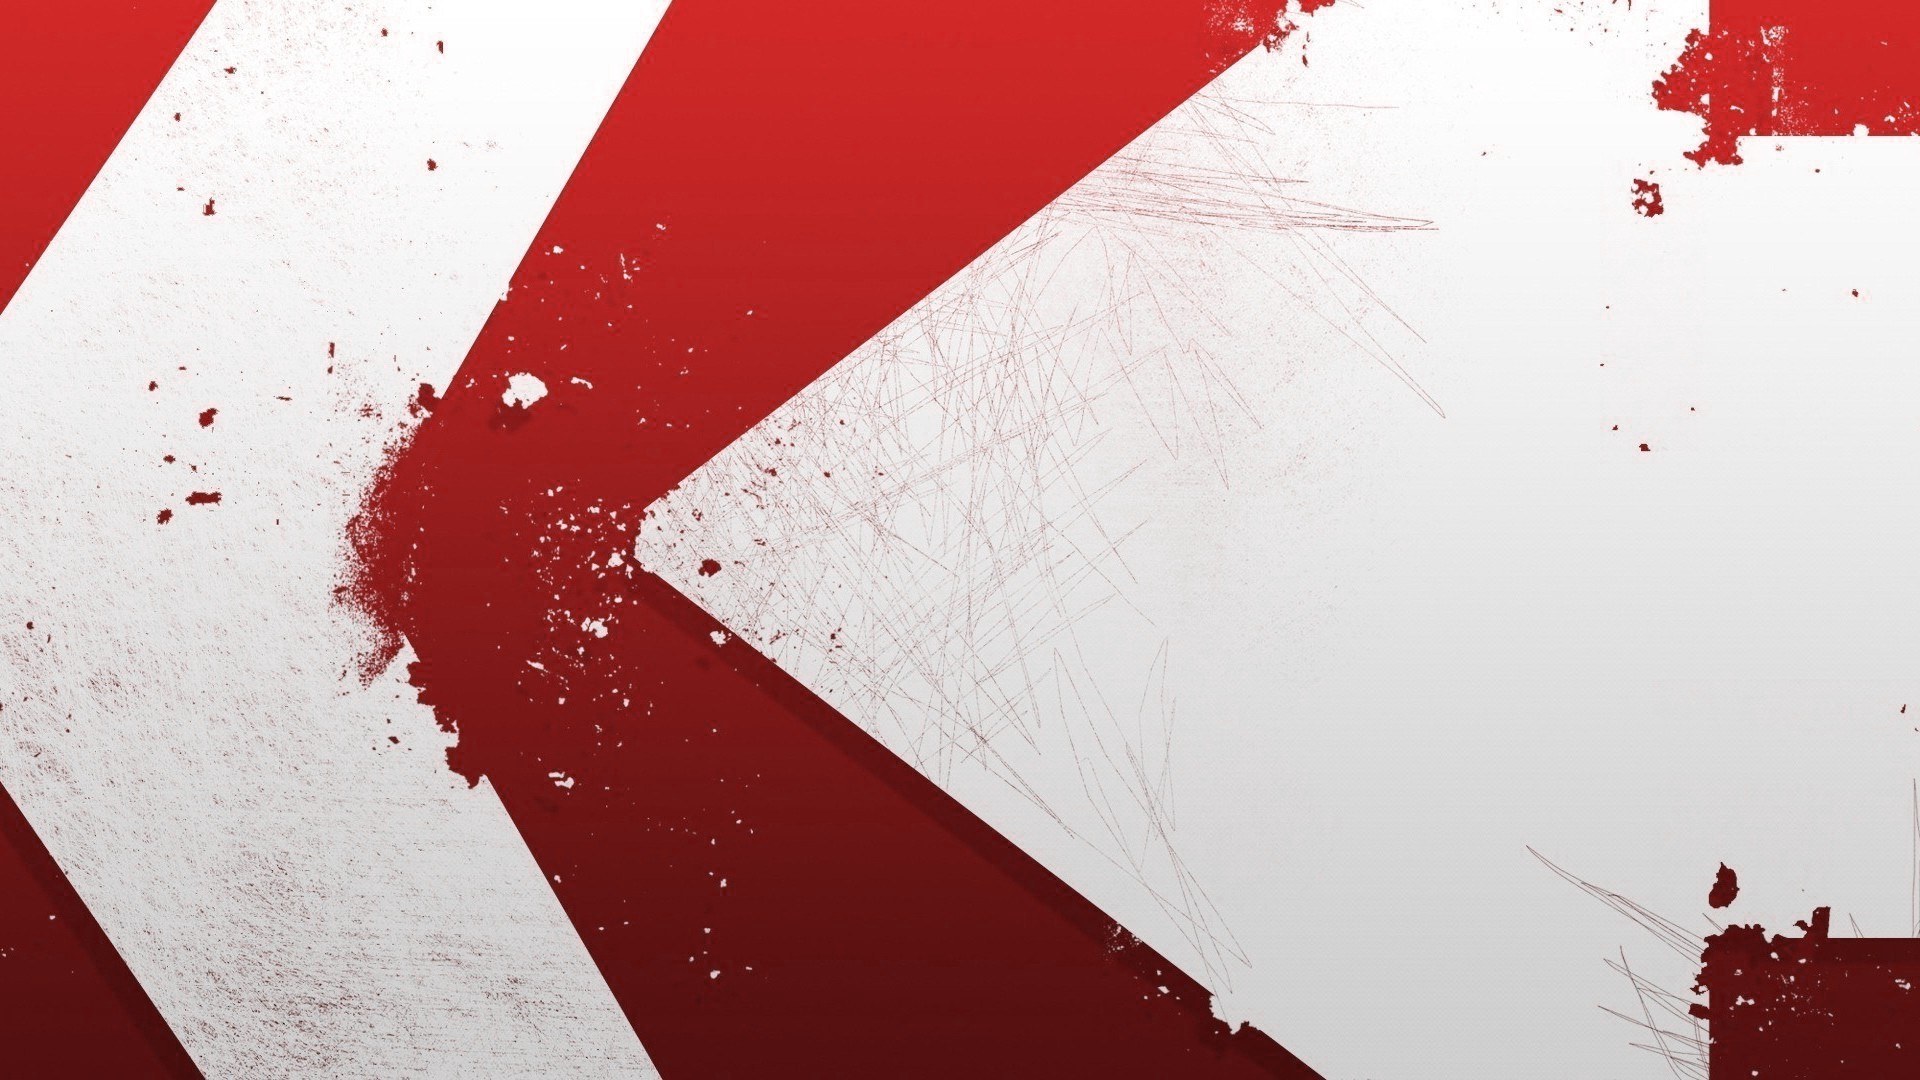 Red and white arrows abstract hd wallpaper 1920x1080 5953jpg 1920x1080